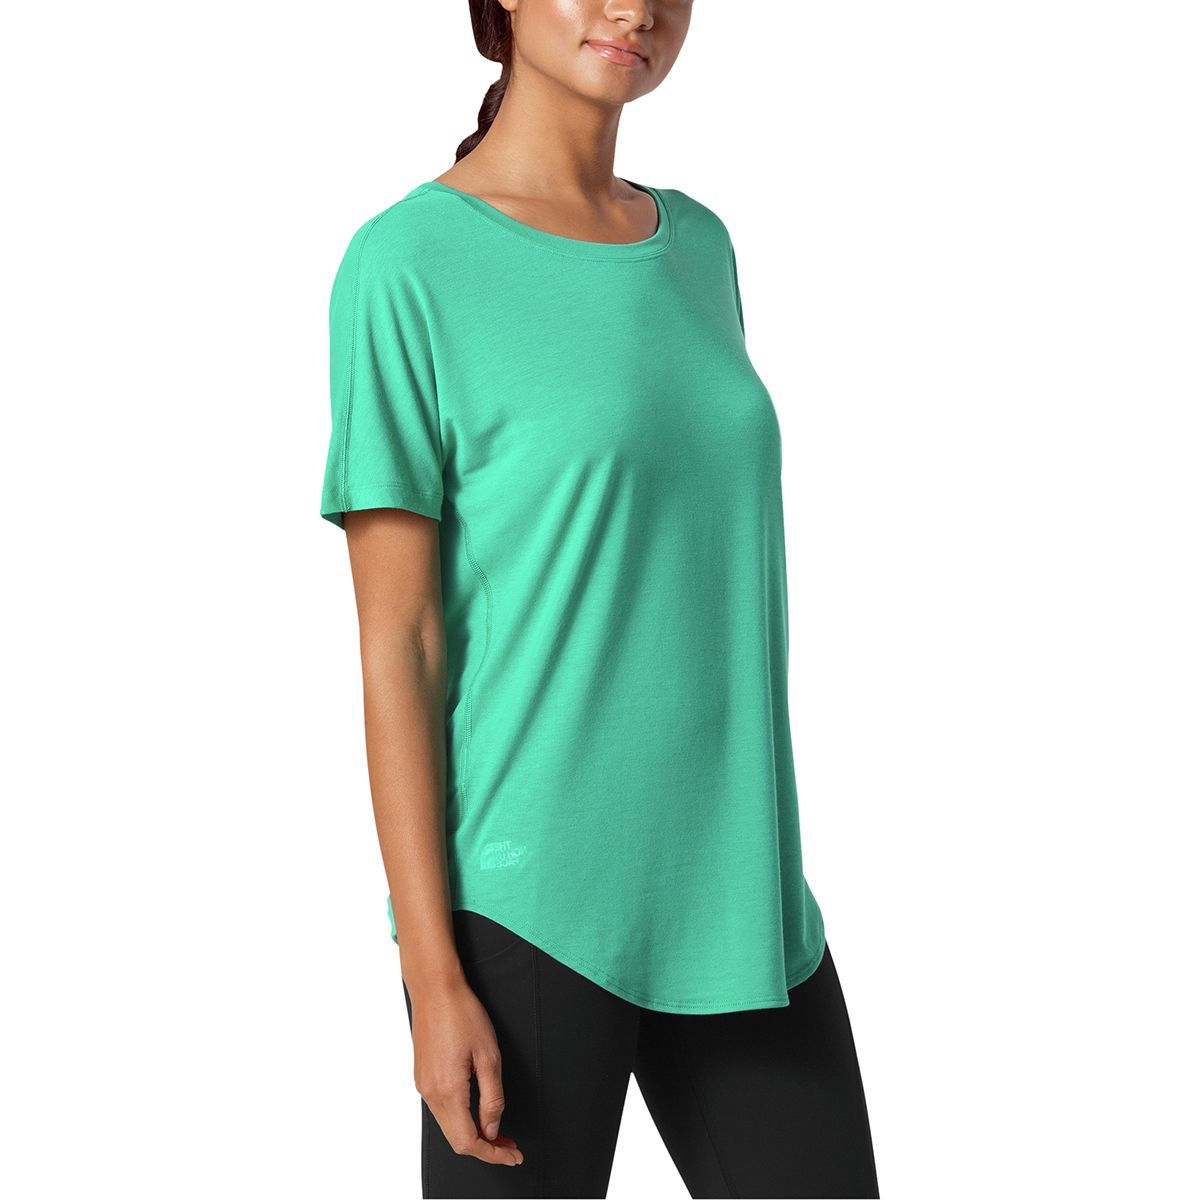 The North Face Workout Short-Sleeve Top - Women's